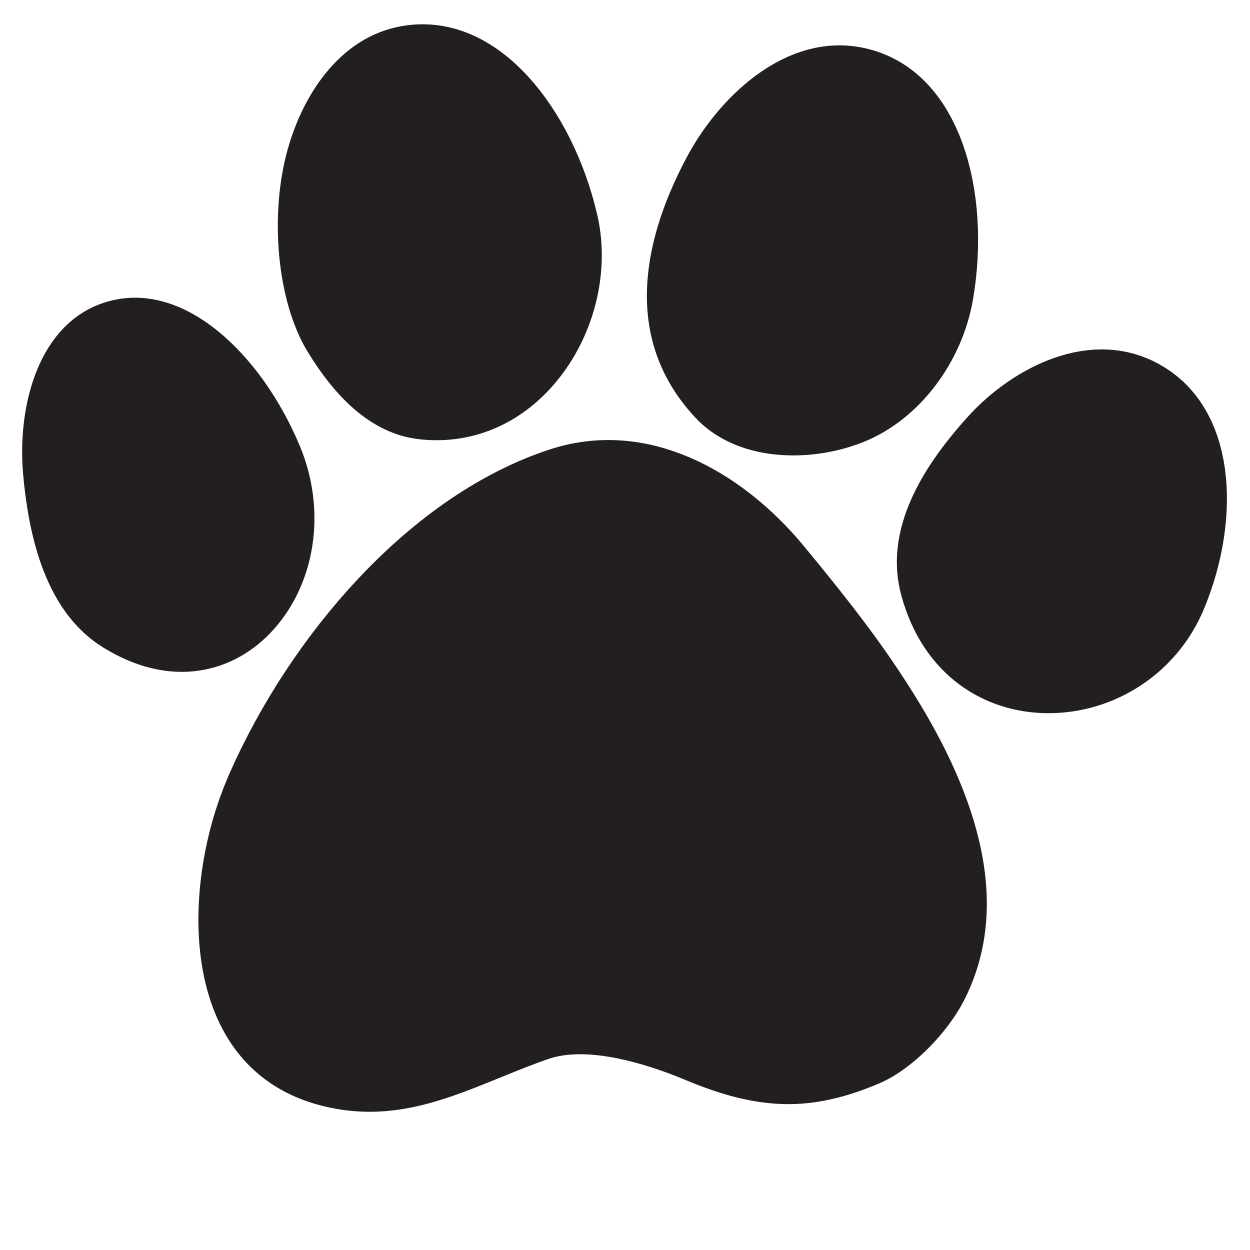 1250x1250 Paw Print Free Download Clip Art Free Clip Art On Clipart